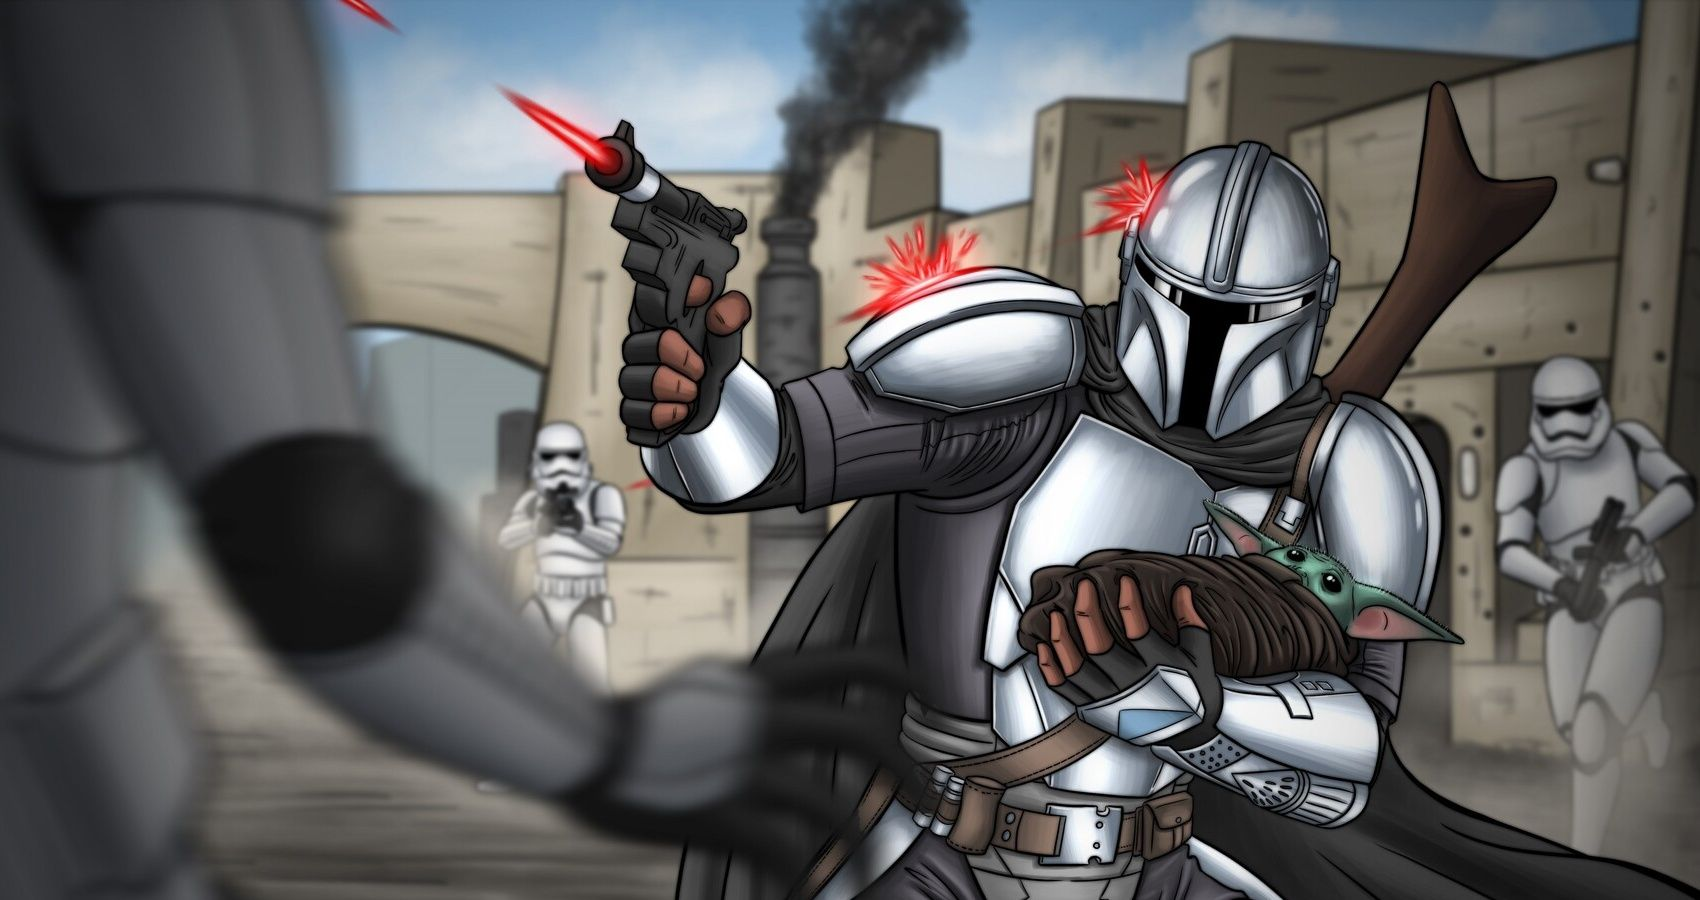 Star Wars: 10 Pieces Of The Mandalorian Fan Art That Are Definitely The Way